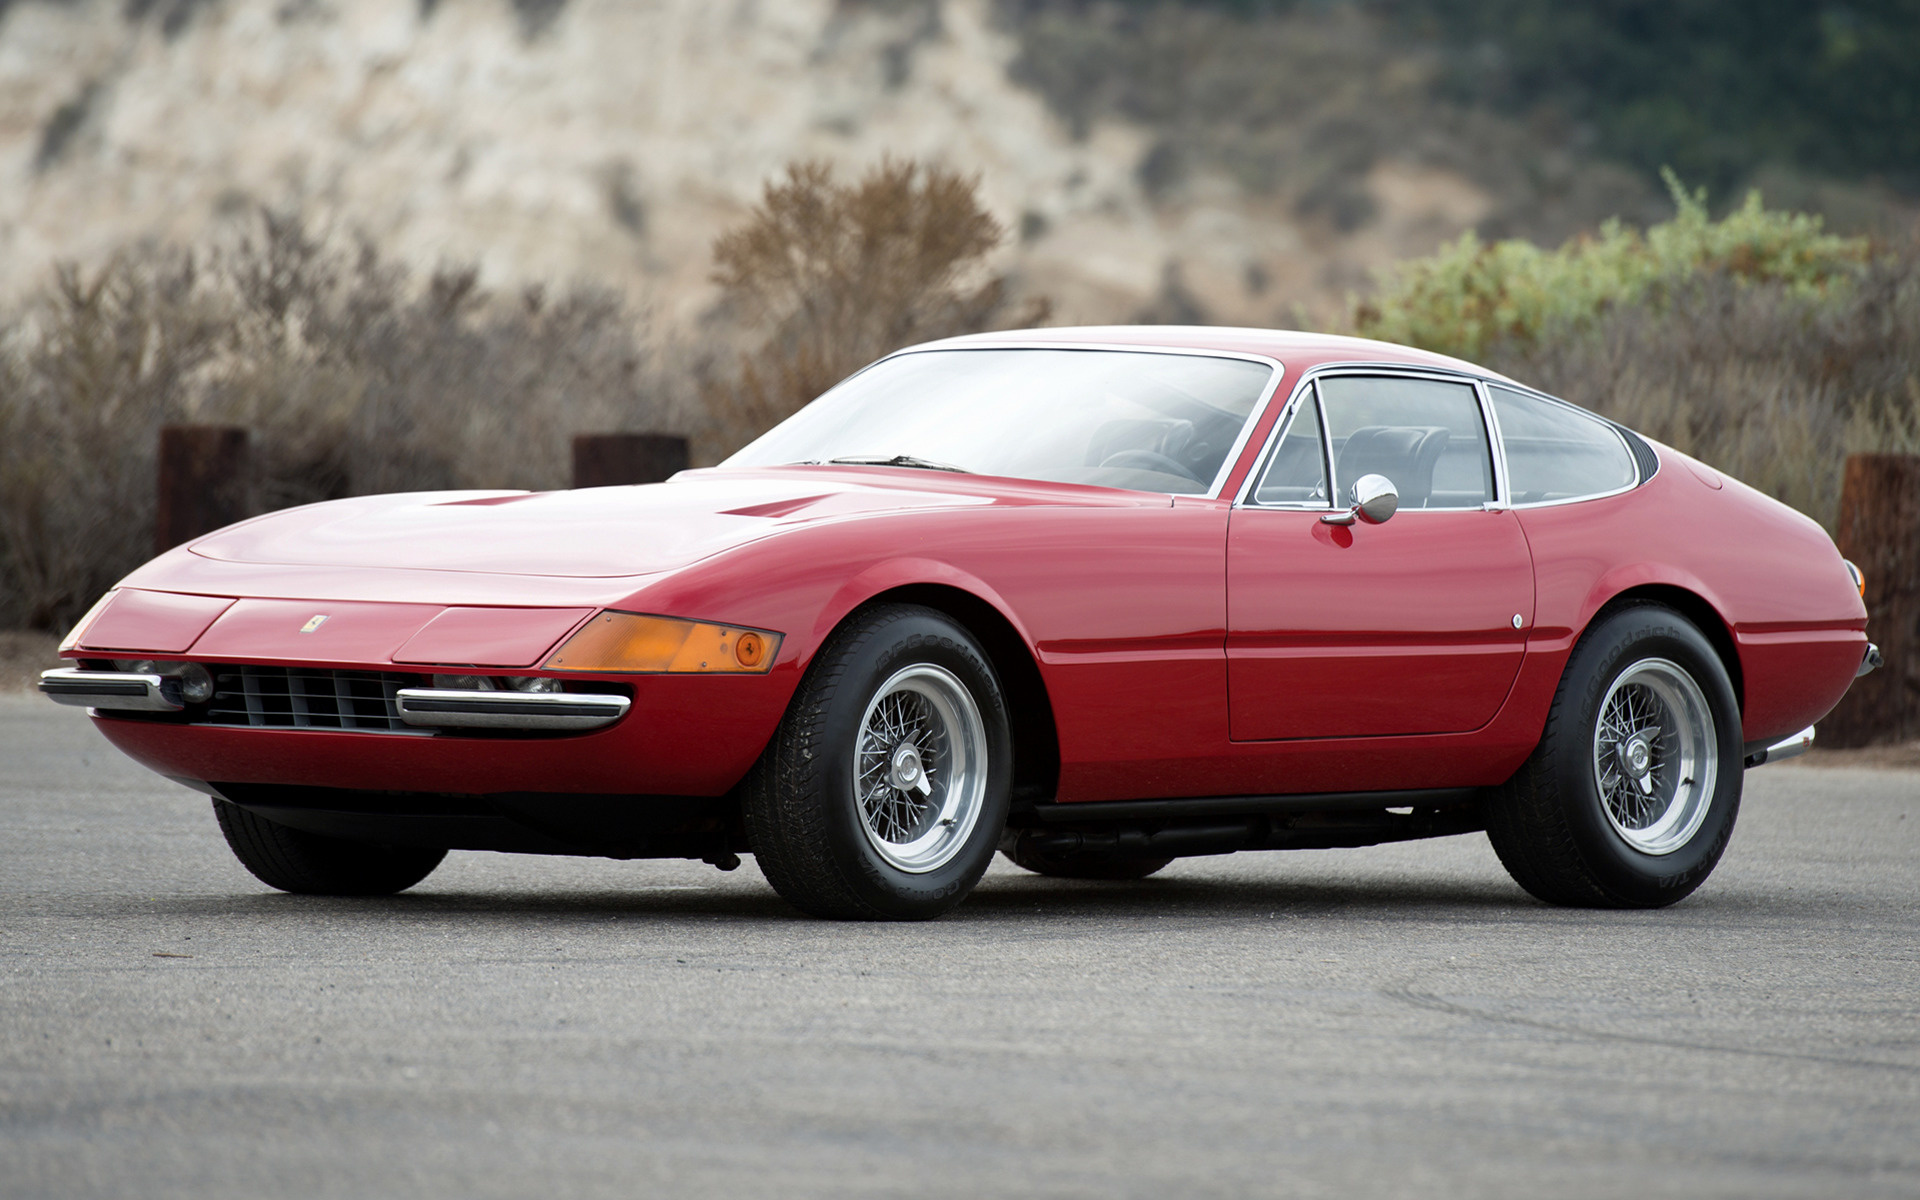 1971 Ferrari 365 GTB/4 Daytona - Wallpapers and HD Images | Car Pixel